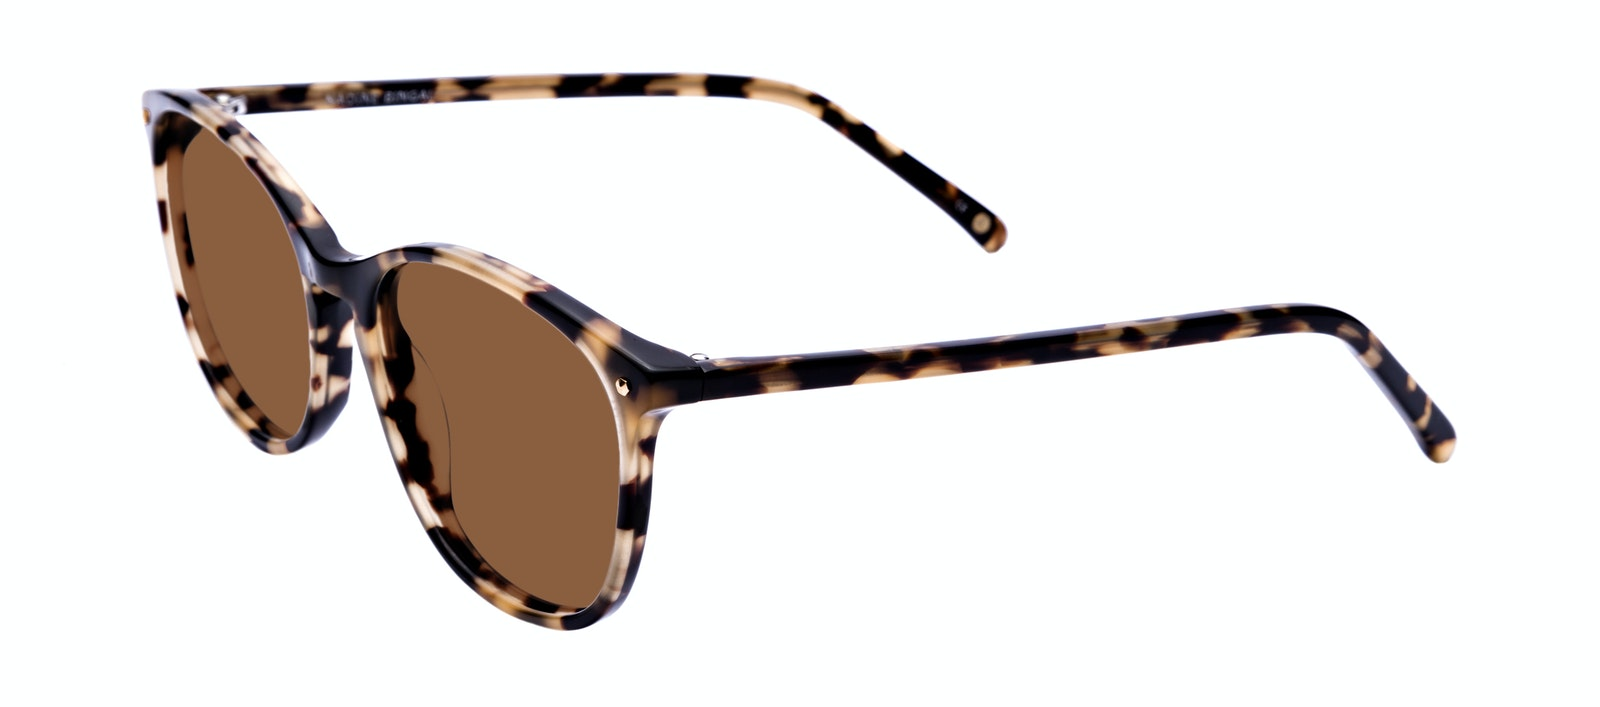 Affordable Fashion Glasses Rectangle Square Round Sunglasses Women Nadine Bingal Tilt